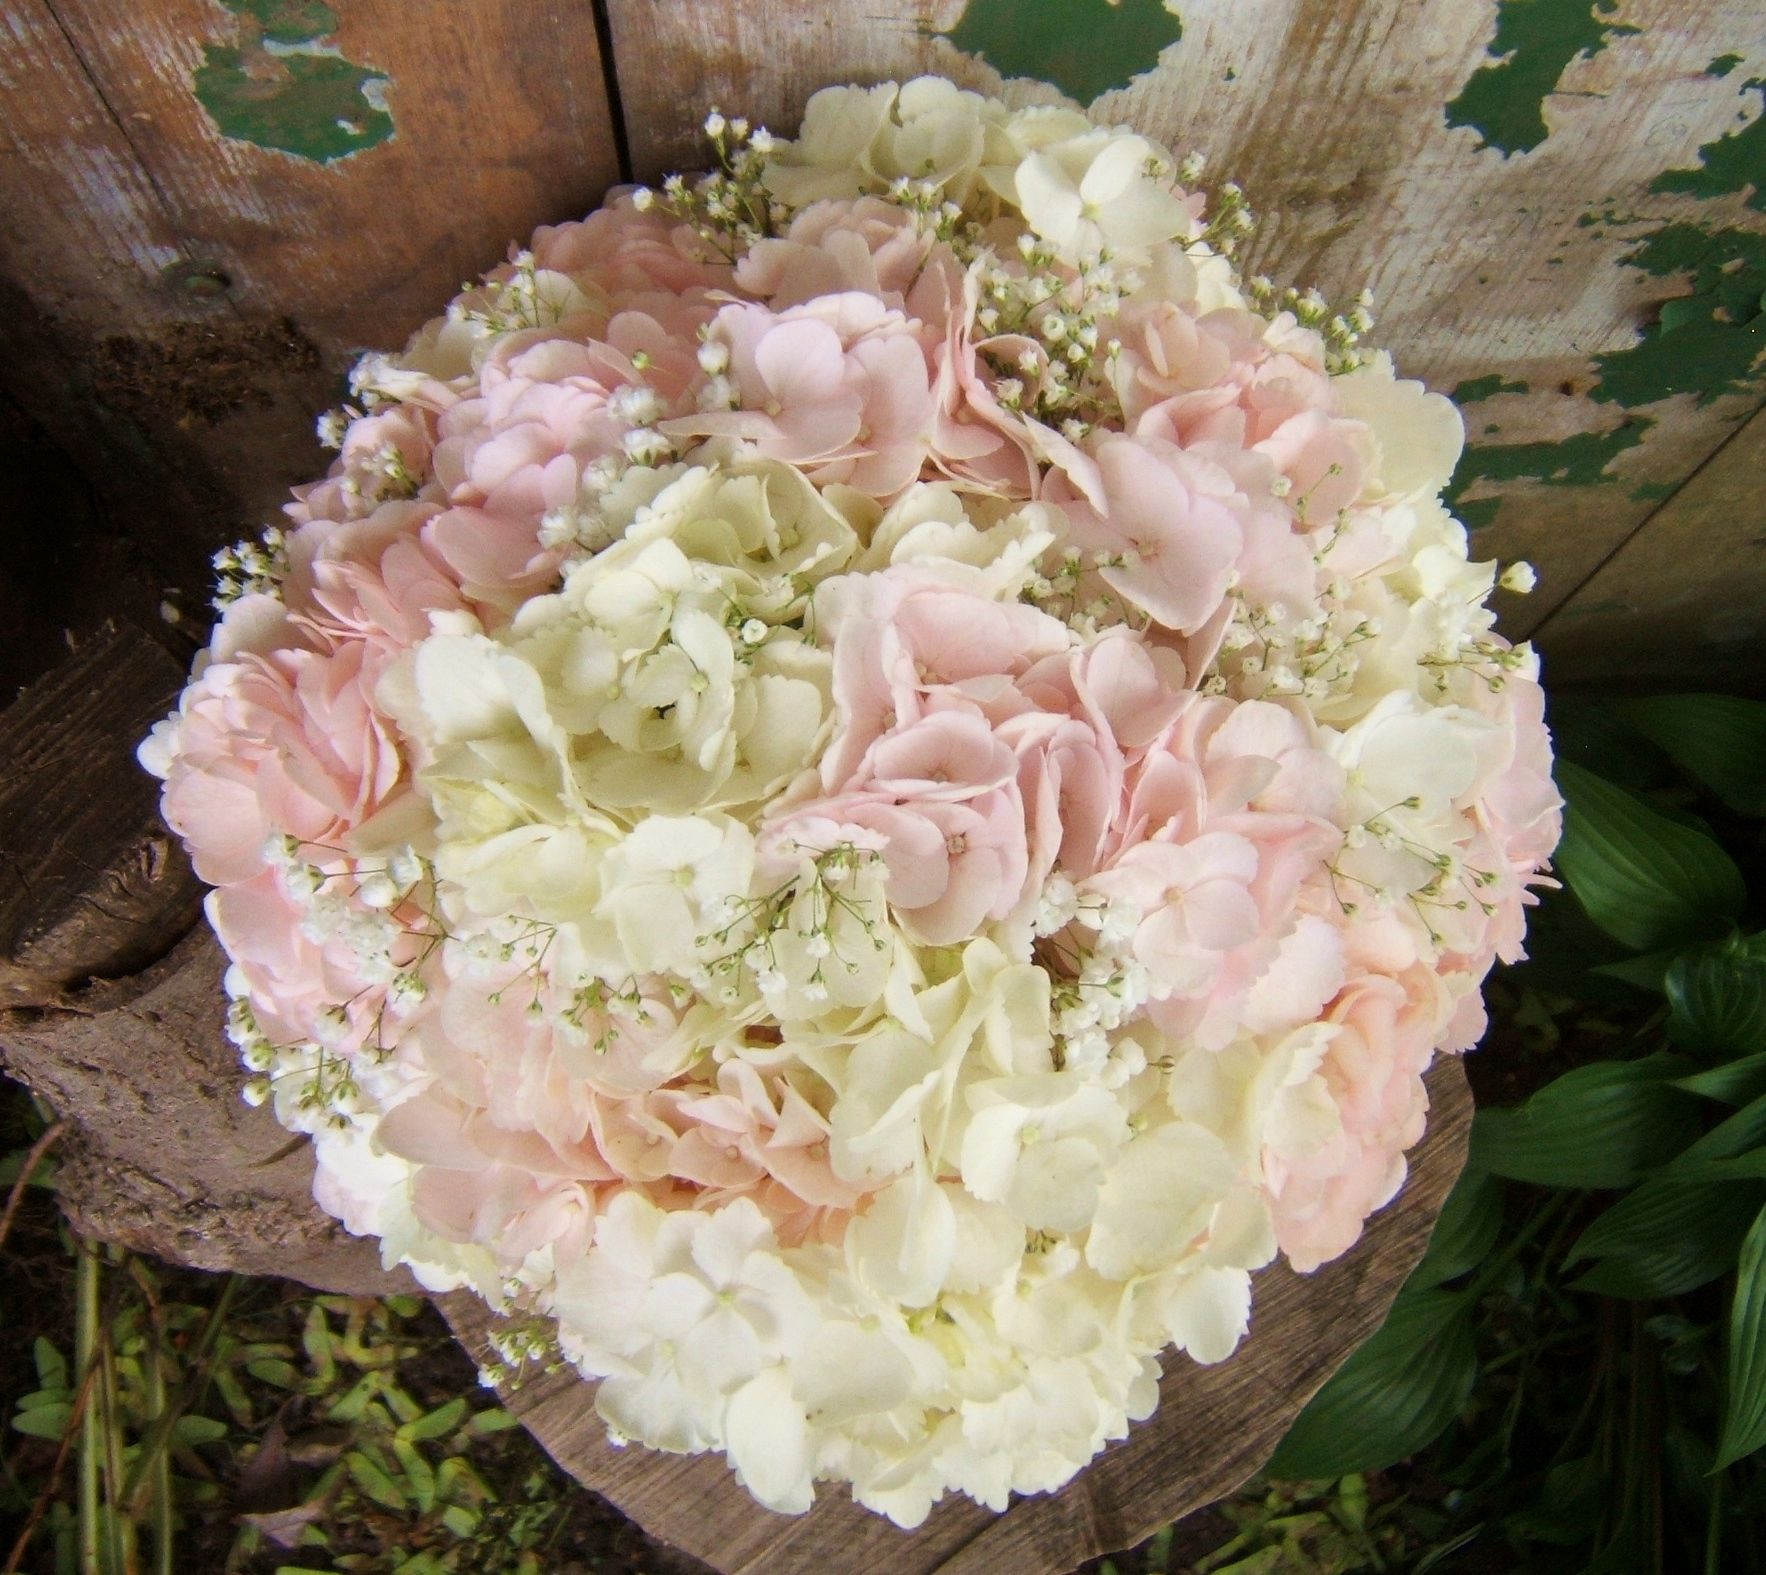 Wedding White Hydrangea: This Bouquet Of Pale Pink And White Hydrangea With Just A